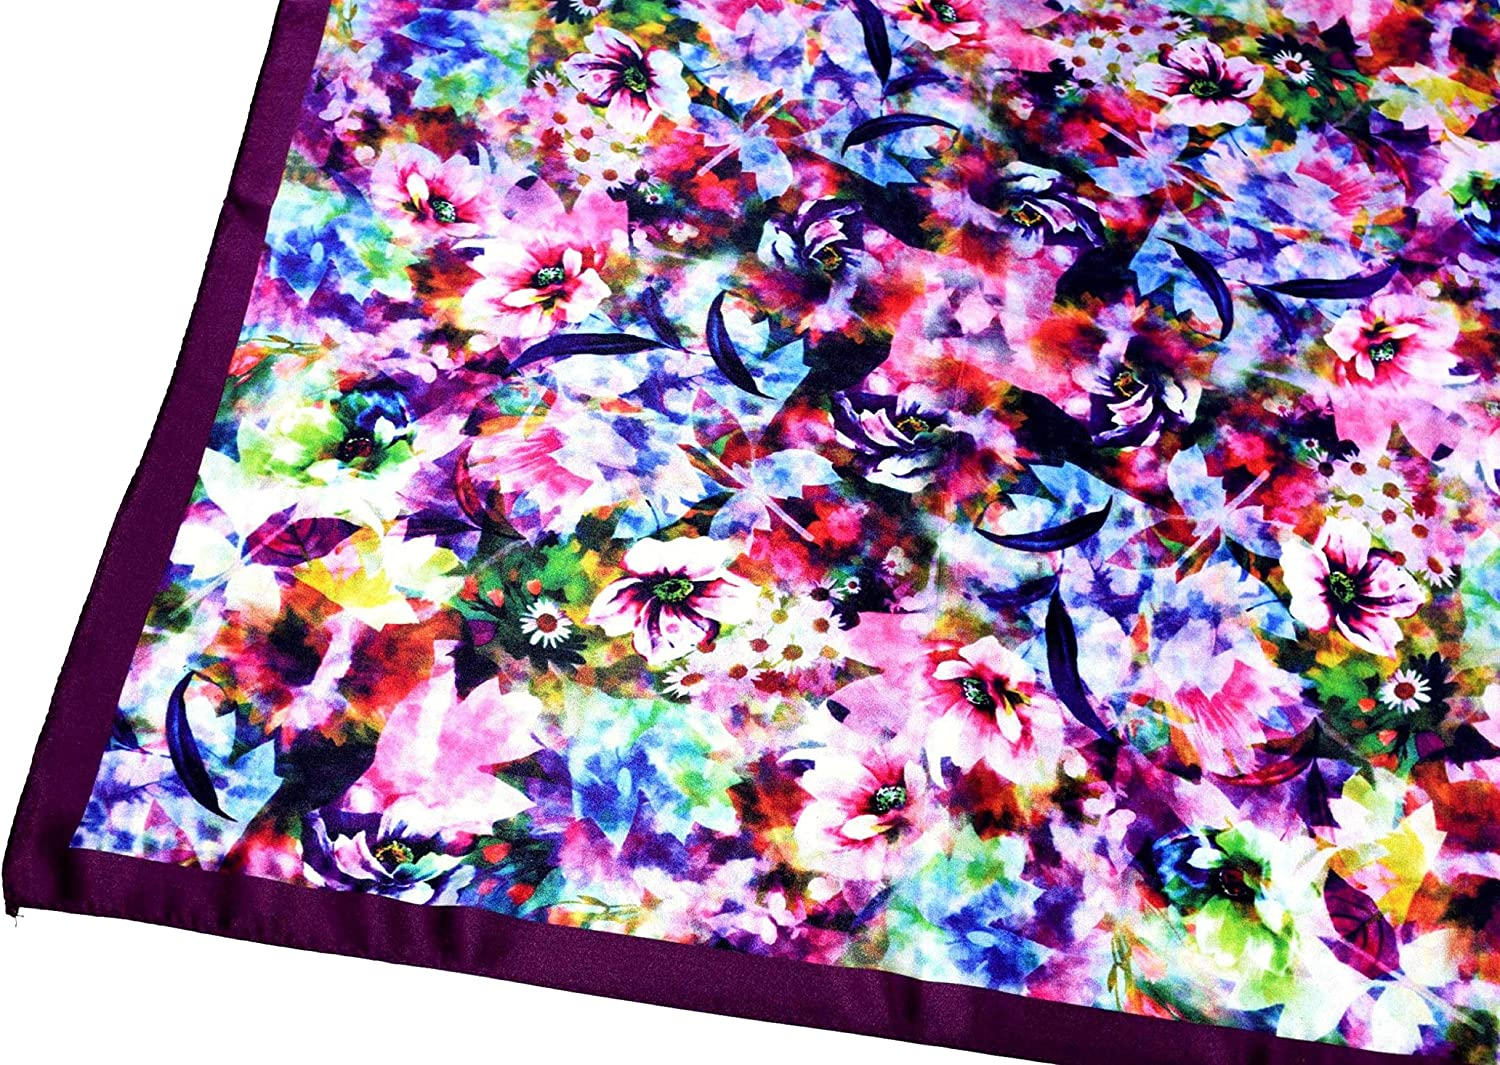 Bees Knees Fashion Foulard Quadrato In Seta Stampata Con Piccoli Fiori Selvatici Multicolori